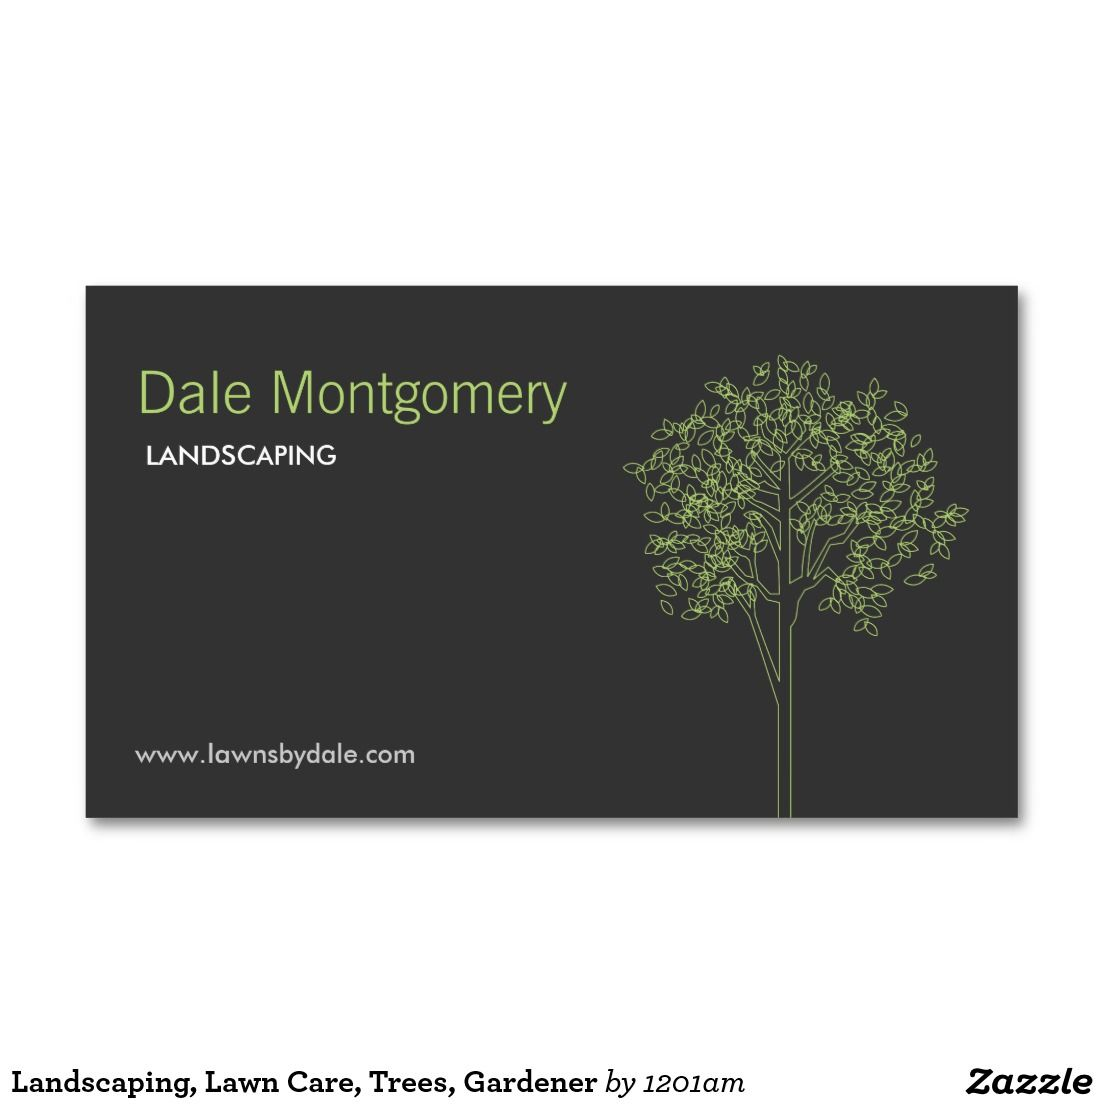 Landscaping lawn care trees gardener doublesided